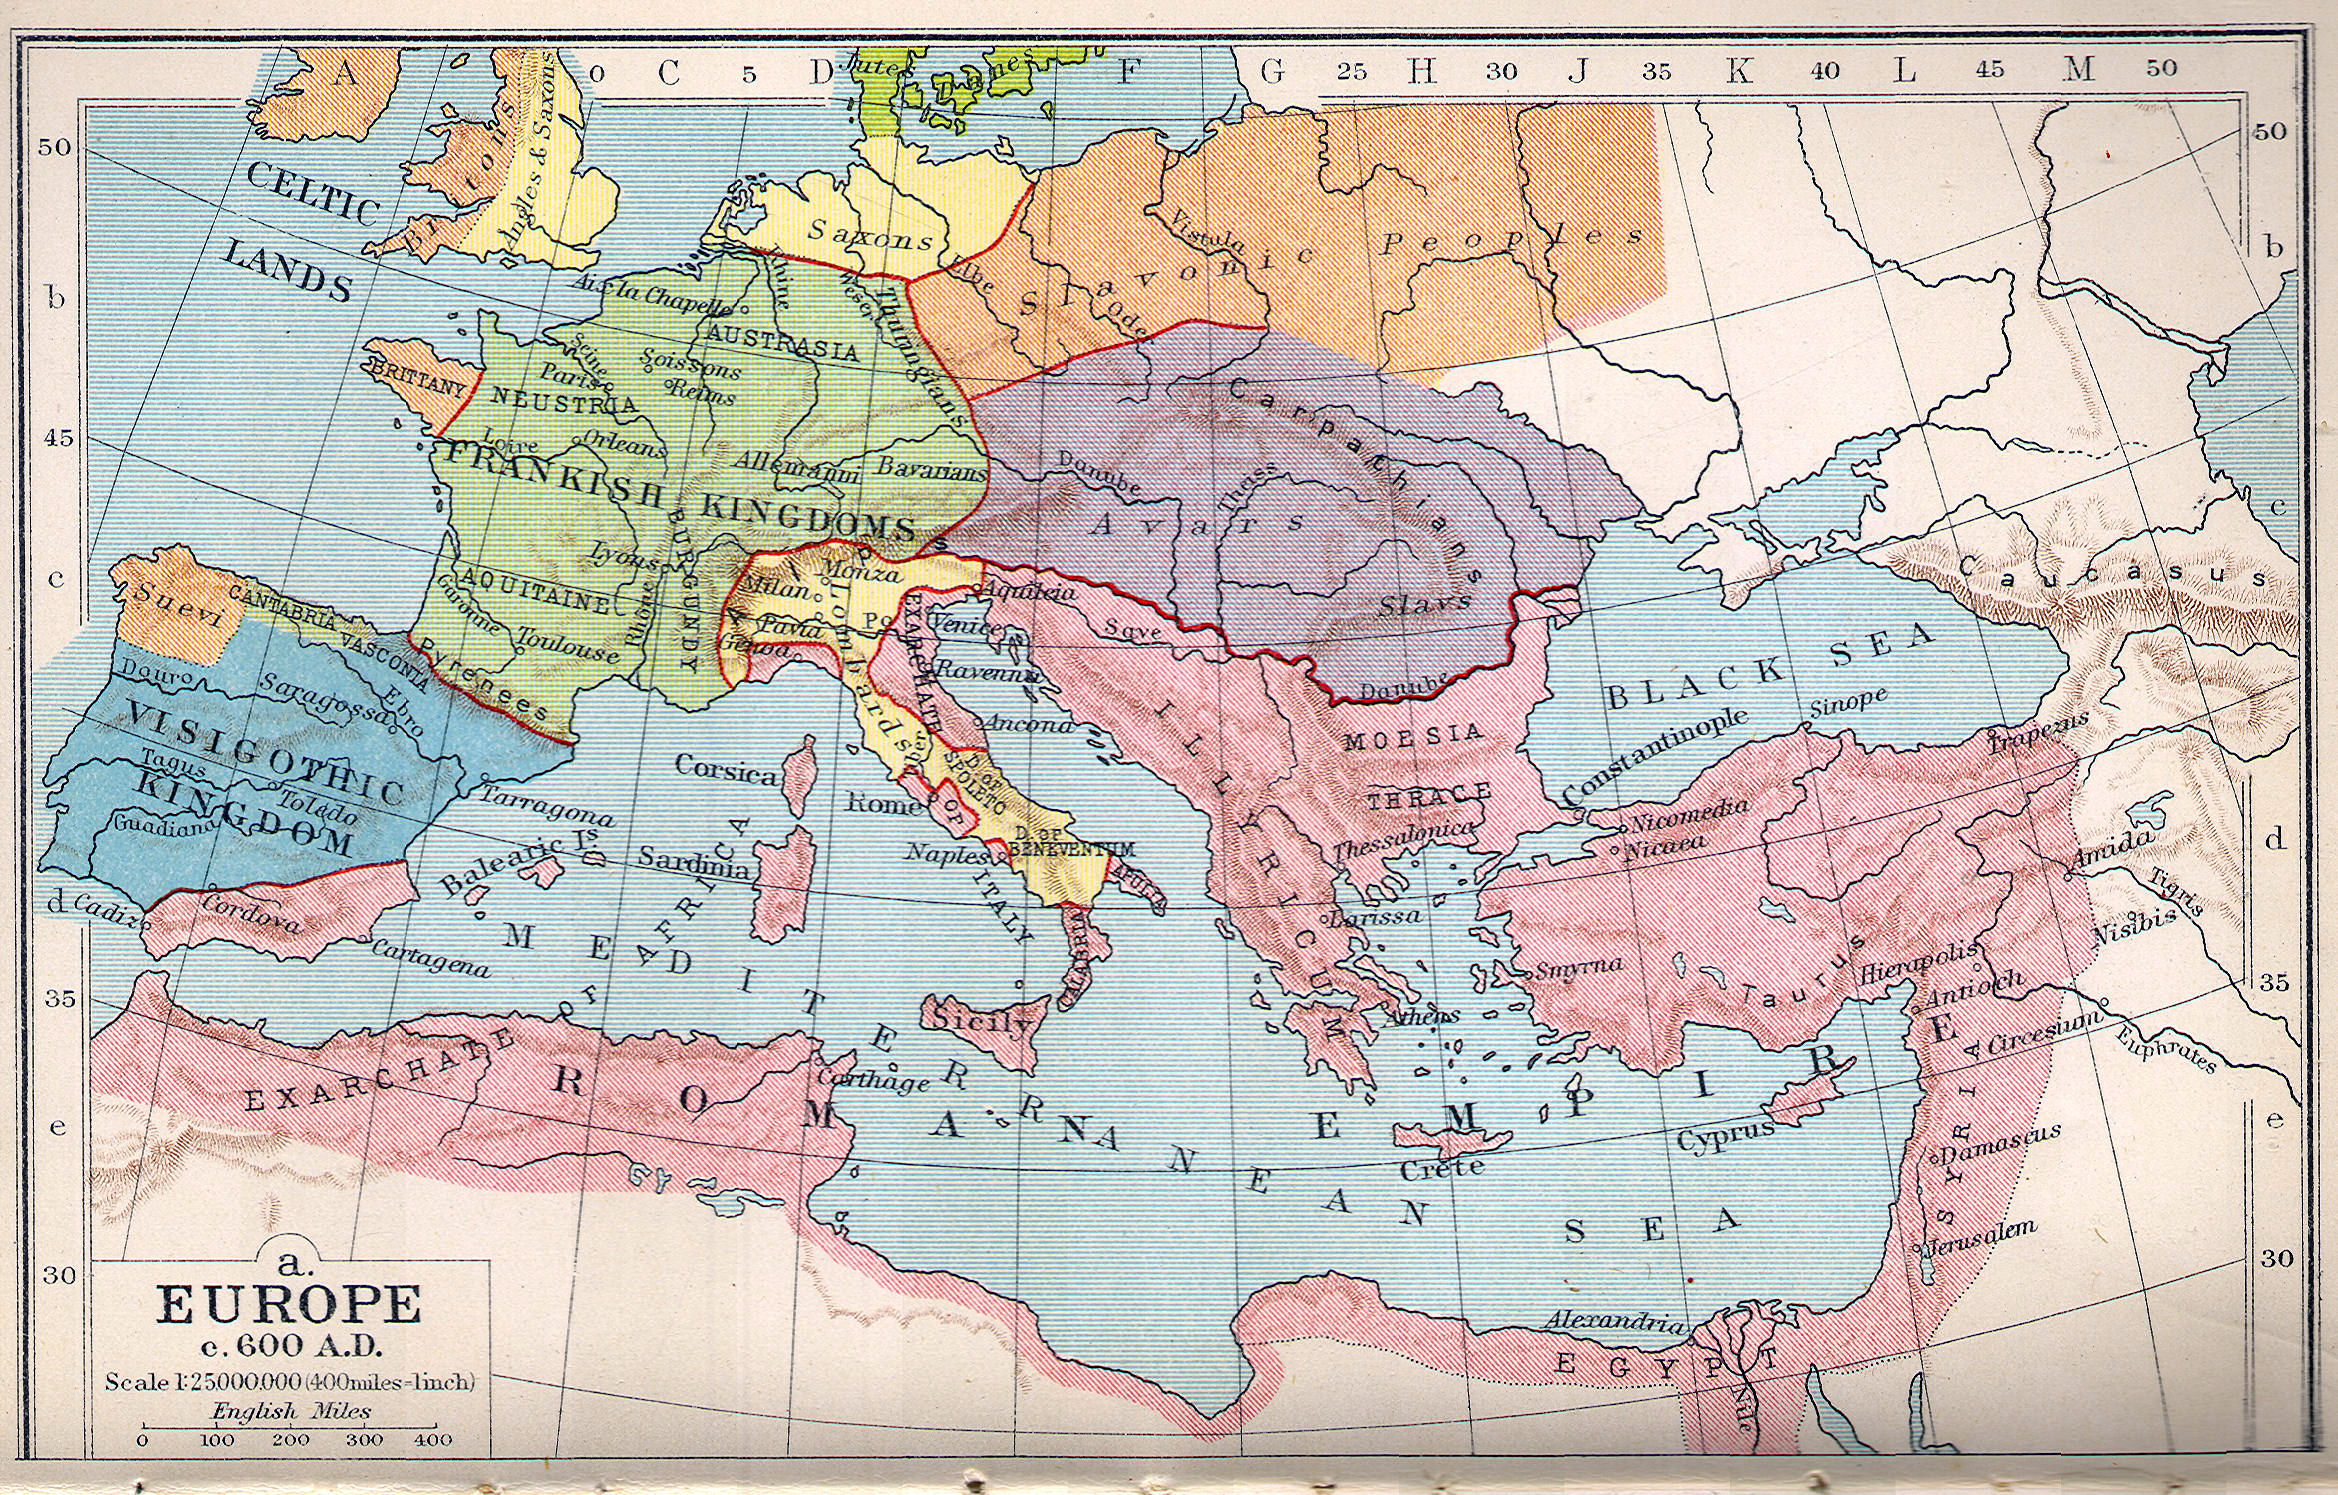 a comparison of the roman empire and the byzantine empire The byzantine empire lasted for a millennium after the fall of the roman empire, ending with the ottoman conquests in 1453 while the roman empire's capital was rome (for most of its history), the byzantine empire's capital city was constantinople, which was previously called byzantium, and today is istanbul.